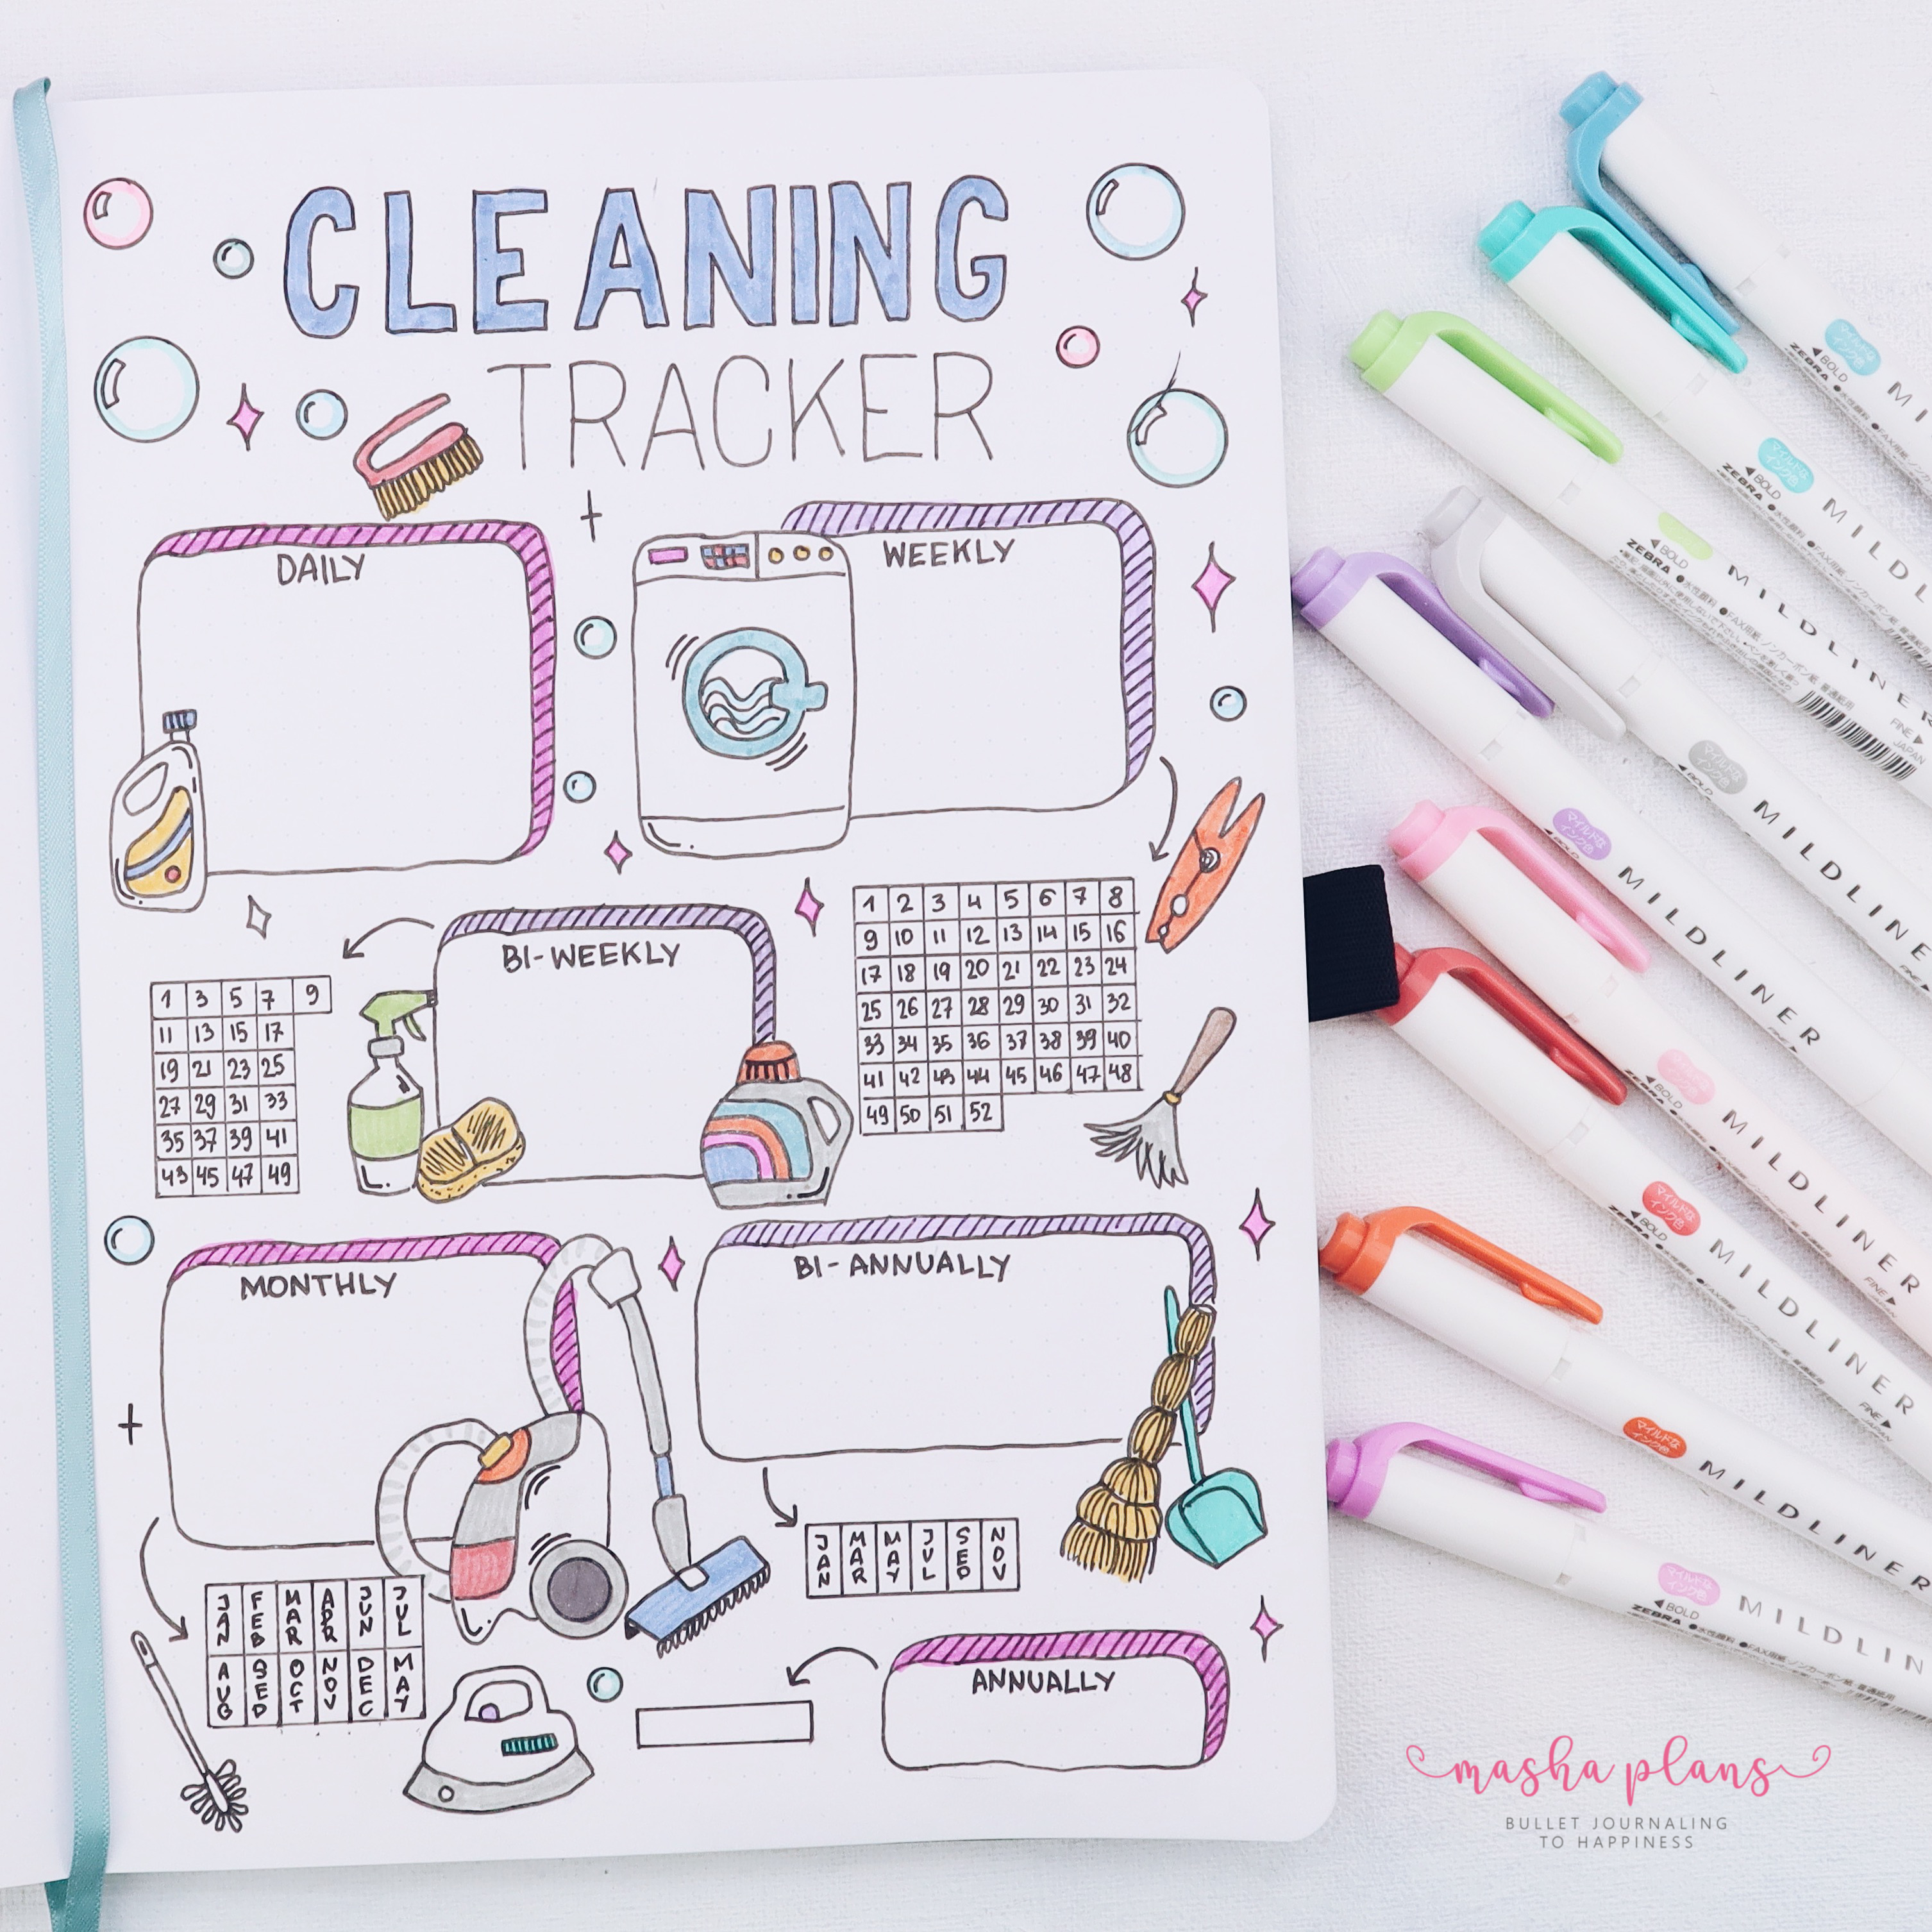 How To Use A Cleaning Tracker In Your Bullet Journal